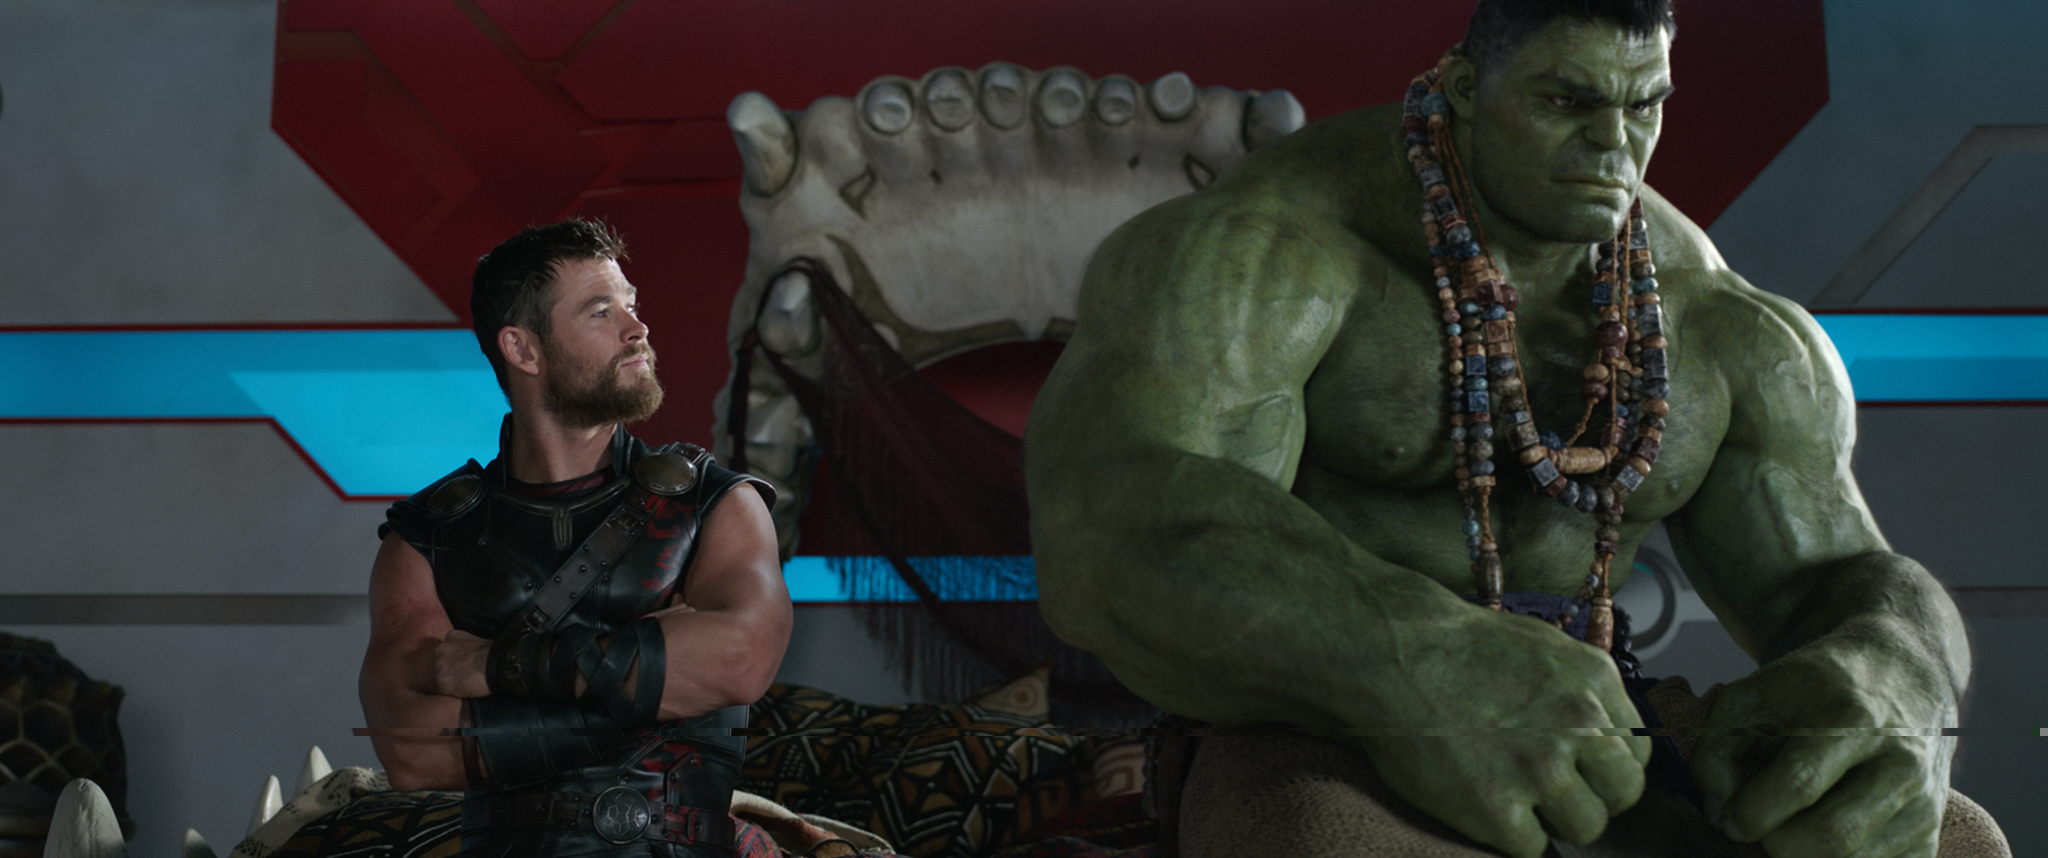 Avengers: Infinity War' Directors Confirm Why the Hulk